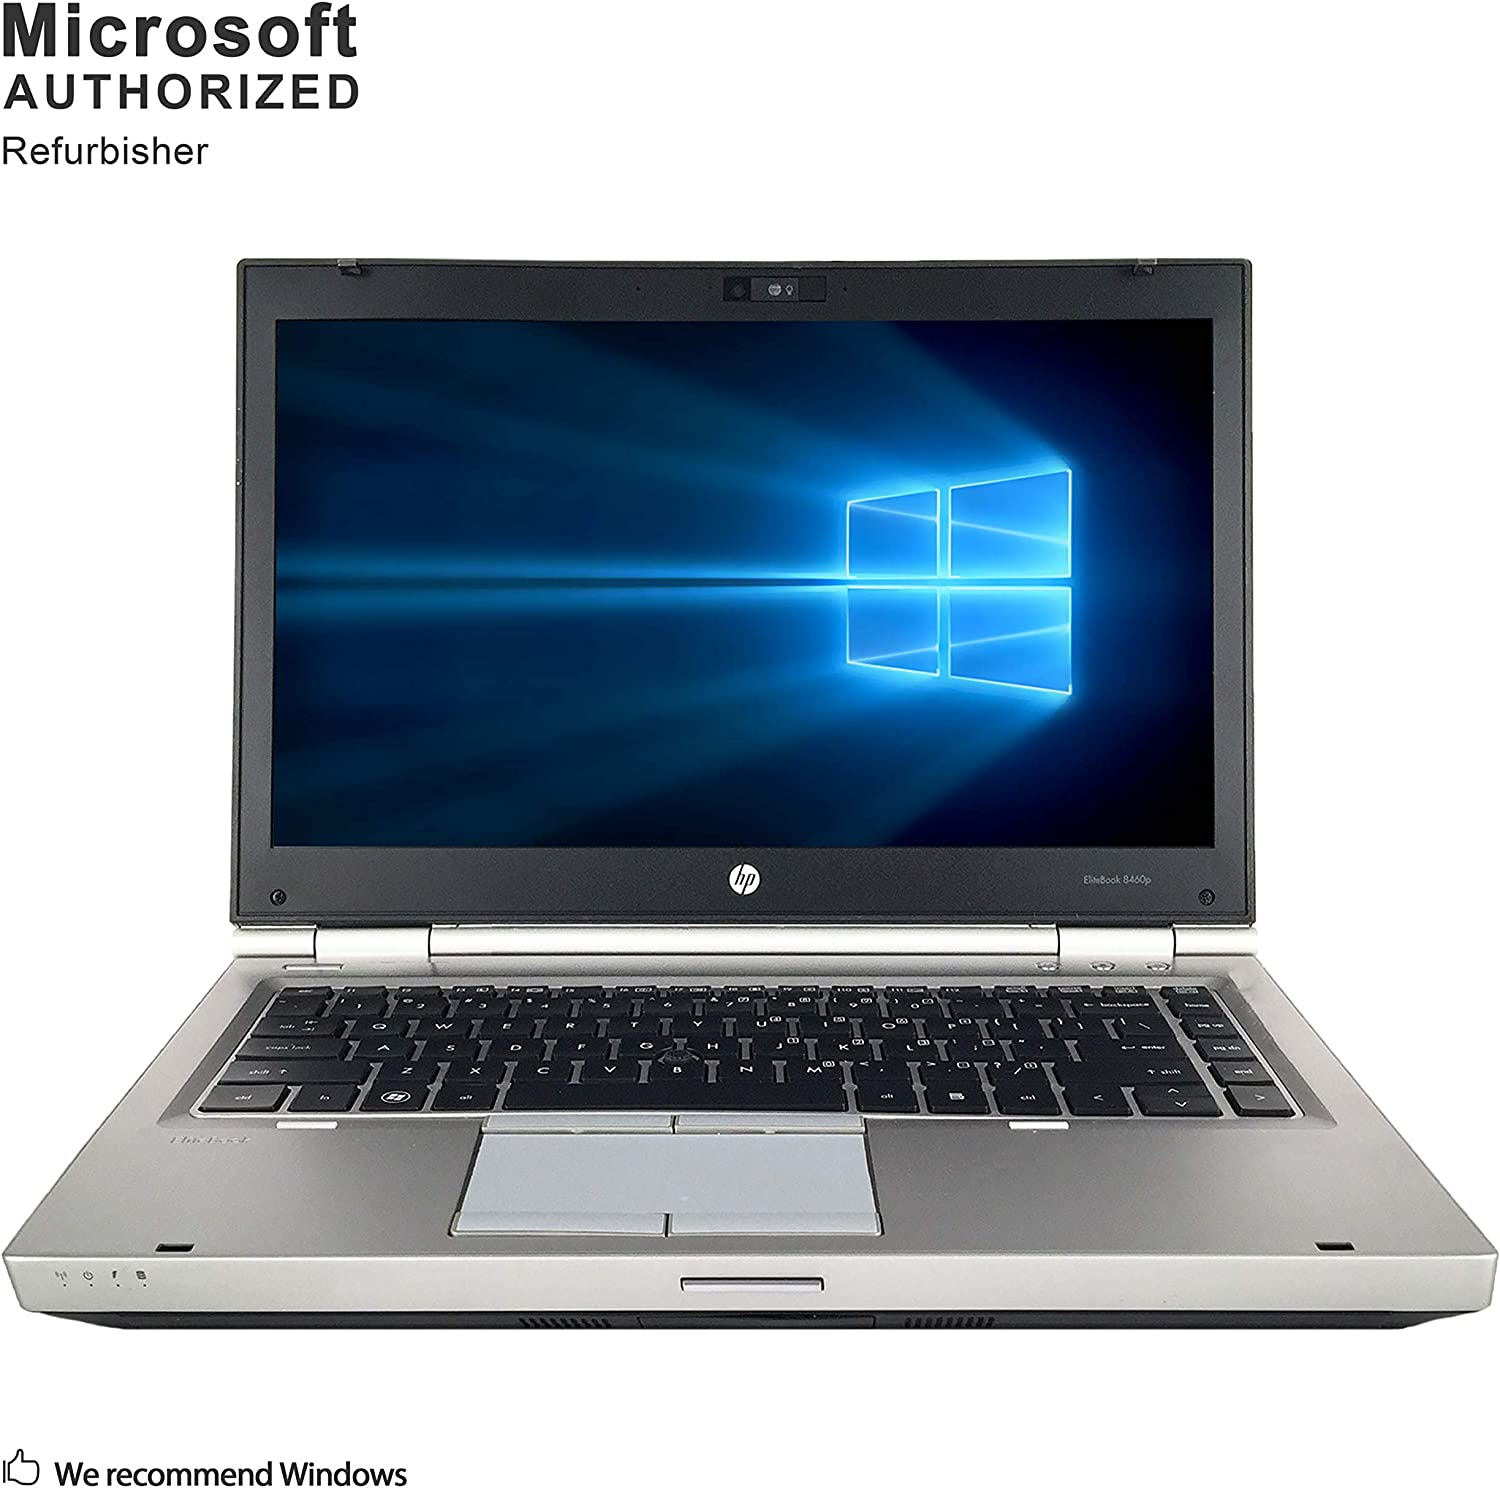 HP EliteBook 8460p 14 Inch Business Laptop, Intel Core i5 2410M up to 2.9GHz, 4G DDR3, 500G, WiFi, DVDRW, VGA, DP, Windows 10 64 Bit Multi-Language Supports English/French/Spanish(Renewed)